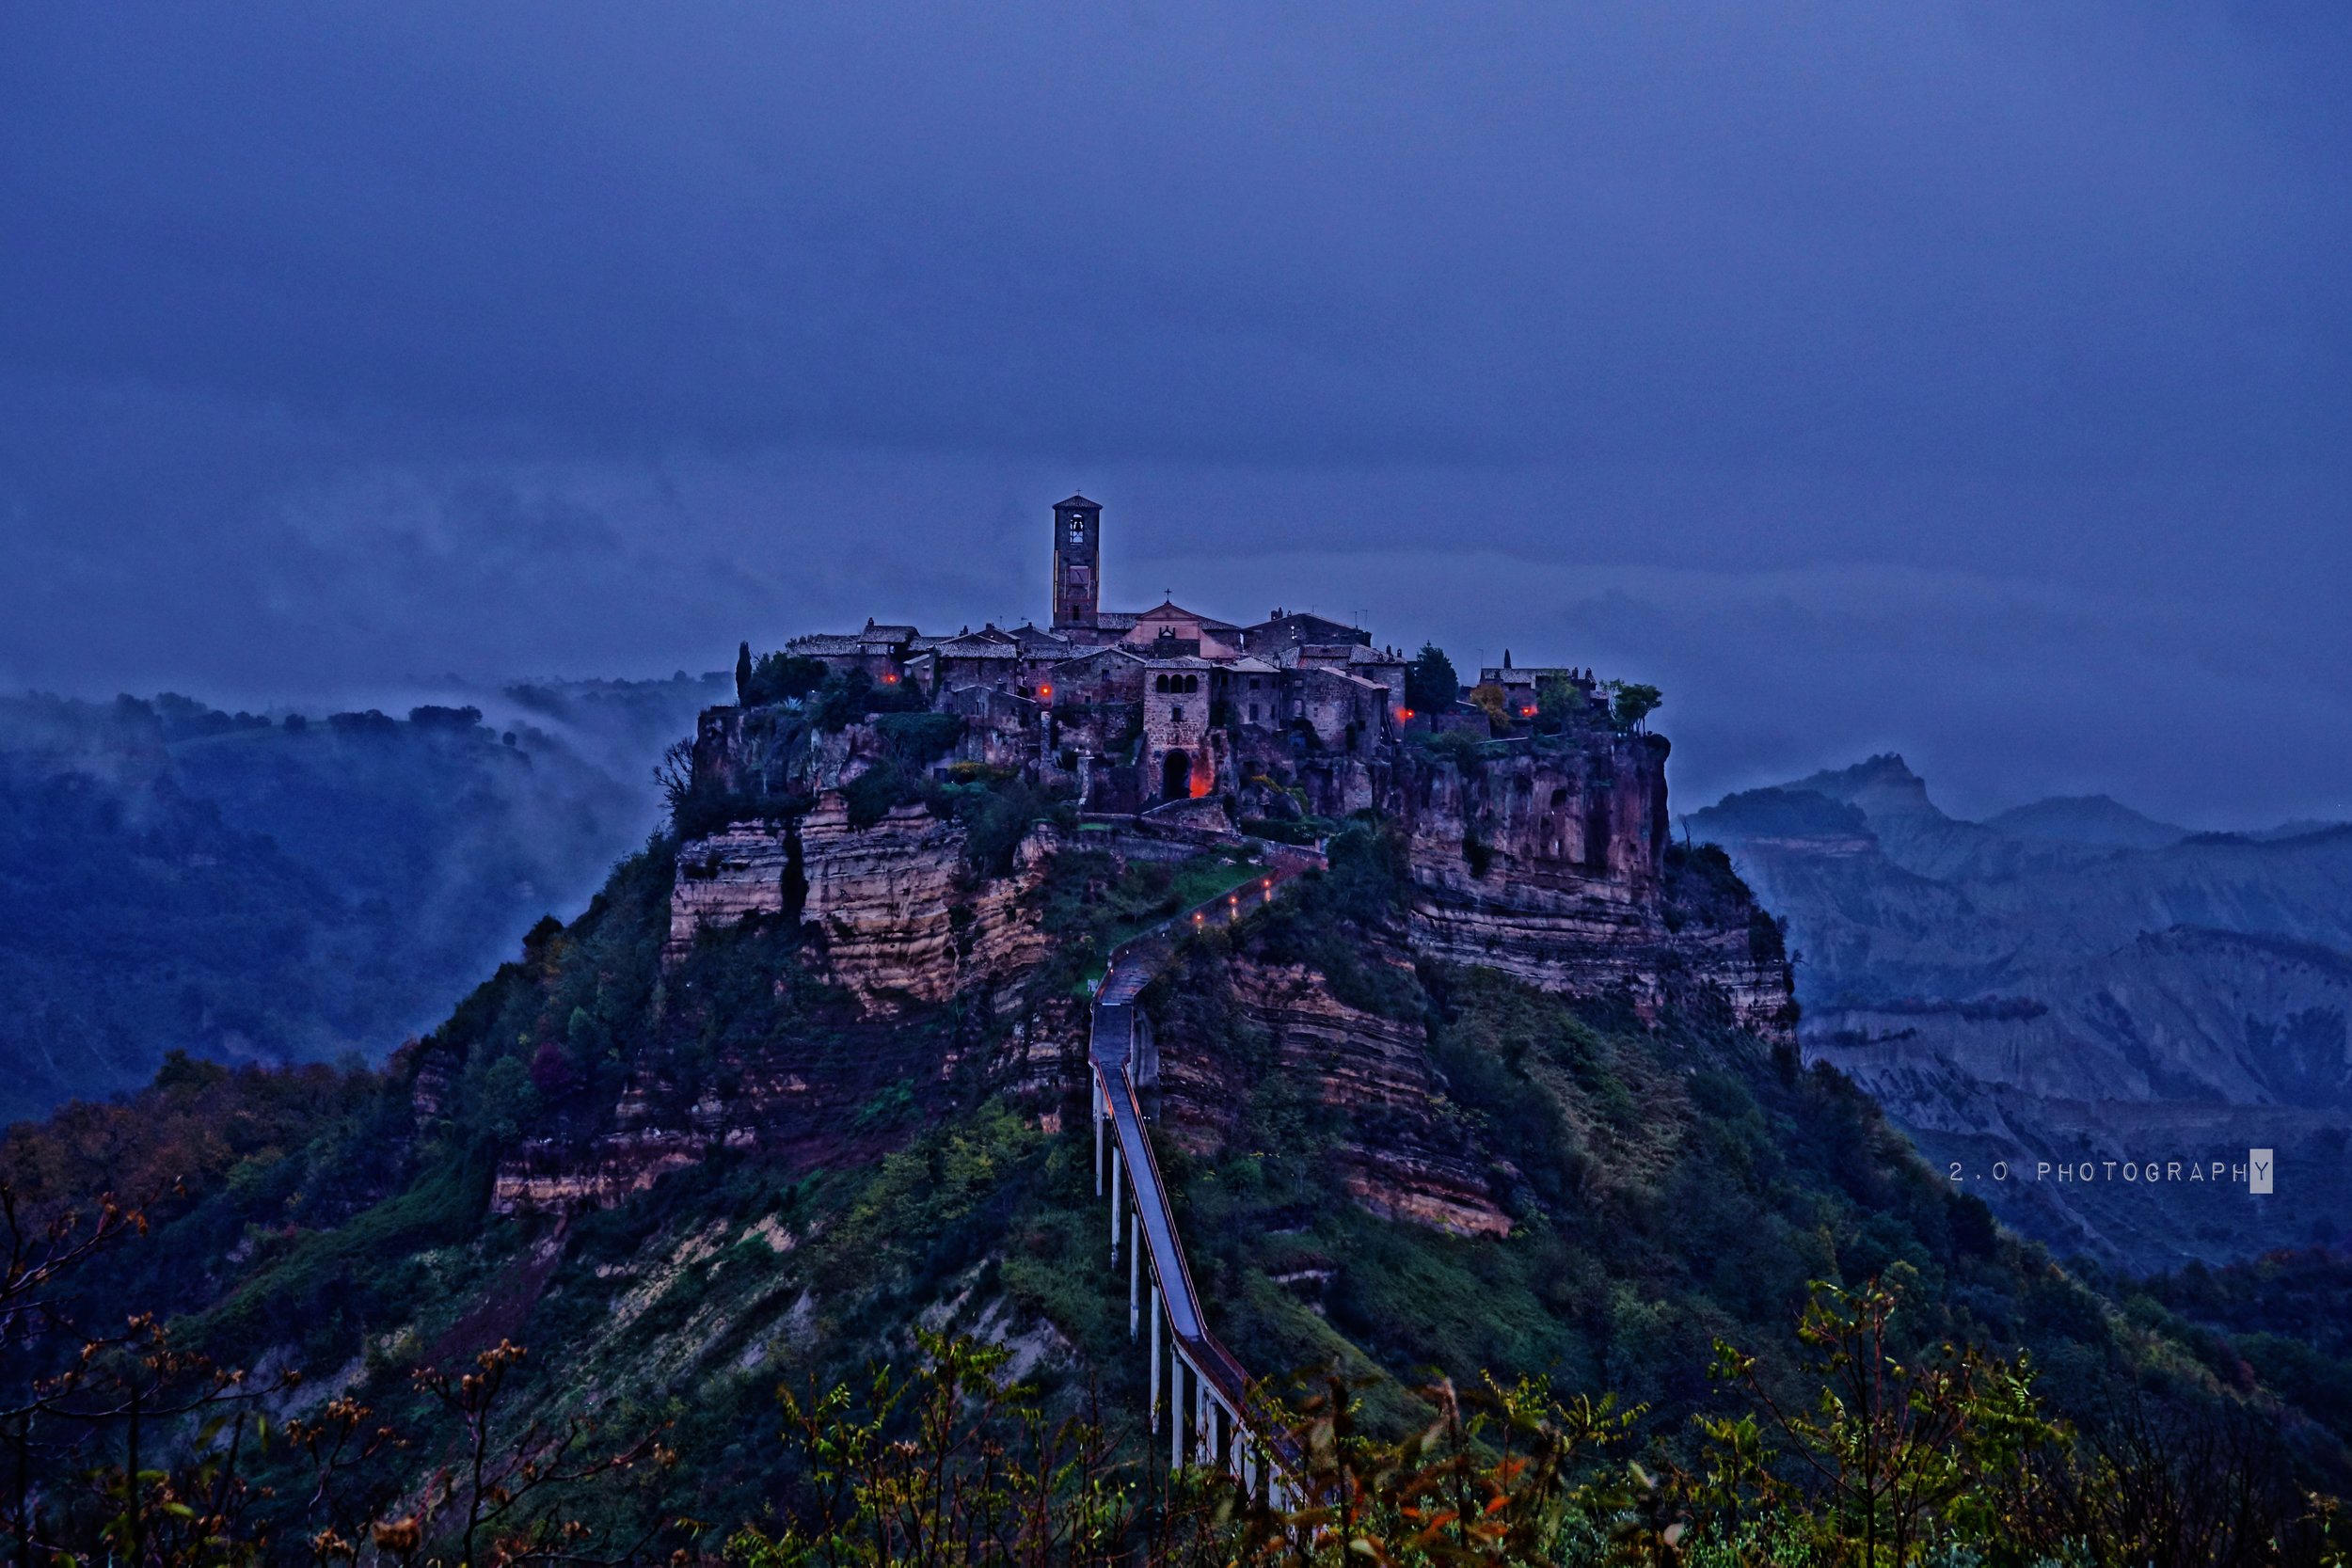 "Civita di Bagnoregio  (il paese che muore, 'the town that is dying"") - Located in the Vitero Province in central Italy, Citiva resides as a suburb of Bagnoregio. Citiva was founded over 2,500 years ago by ancient Italy's Etruscans. In the 16th century, Citiva began to decline as it was eclipsed by Bangoregio. Earthquakes accelerated the city's decline during the 17th century, and by the 19th century, Citiva was turning into an island. Citvia and its inhabitants are in constant danger of being washed into the sea, as the edges of its plateau succumbs to erosion. Buildings crumble as their underlying support falls away, a fact that is truly heartbreaking. This city's architecture spans several hundred years, and, perhaps because of this fact, has been experiencing a tourist revival. In 2004, there were plans to reinforce the island city's plateau with steel rods to prevent further geological damage from occurring.https://en.wikipedia.org/wiki/Civita_di_Bagnoregio"